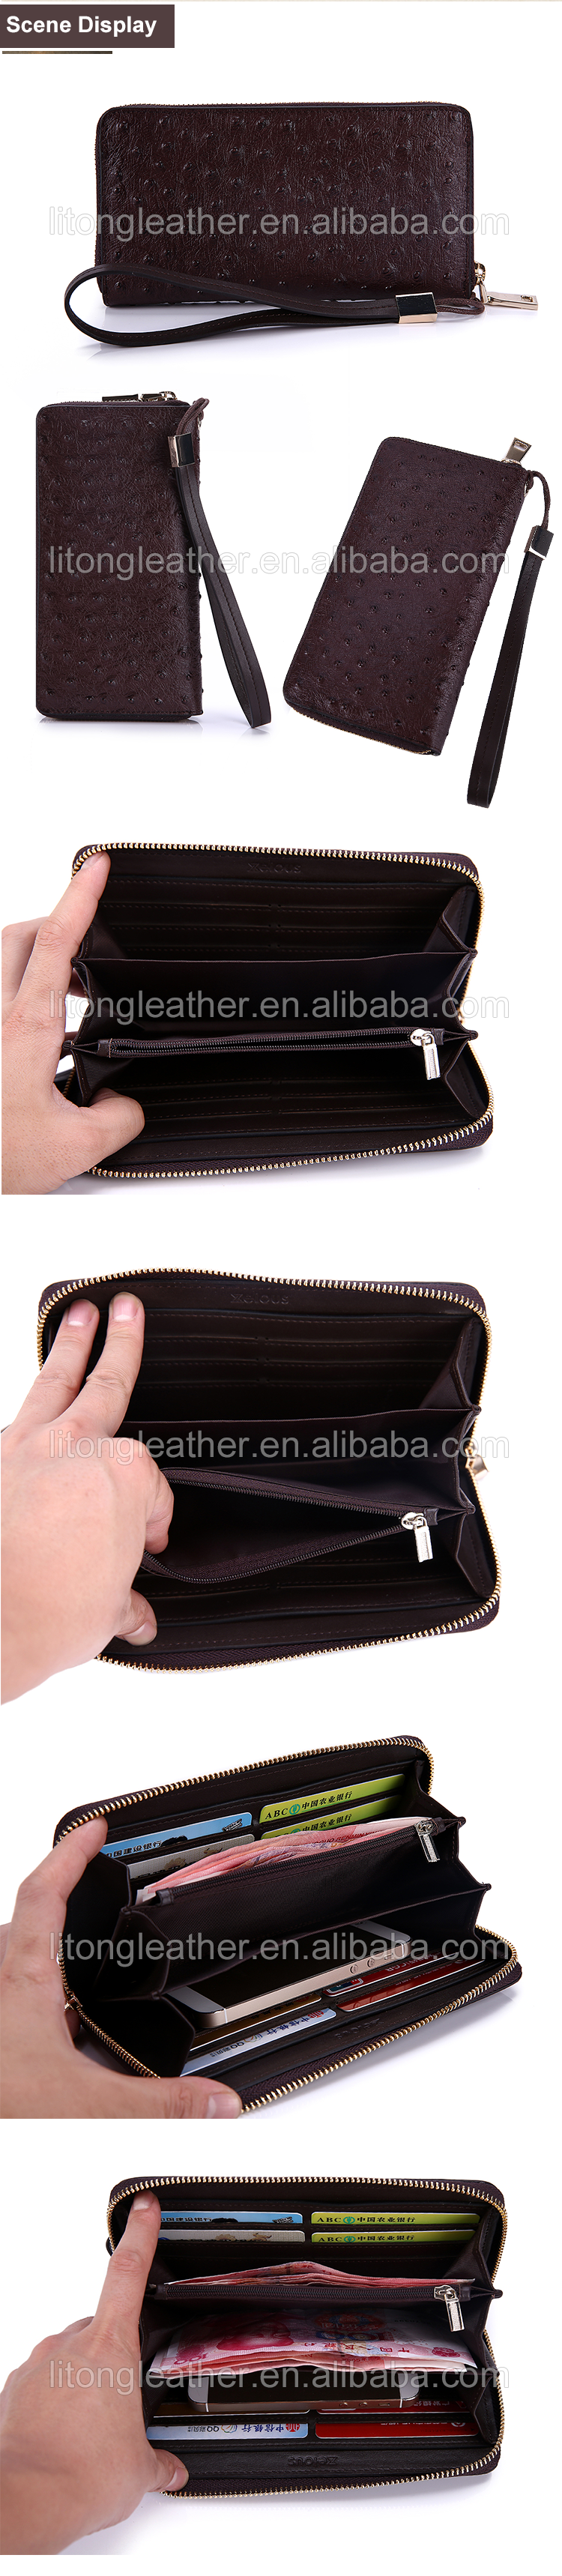 Large capacity RFID blocking full grain ostrich patter leather long wallet mens with card slots zipper cash holder pockets